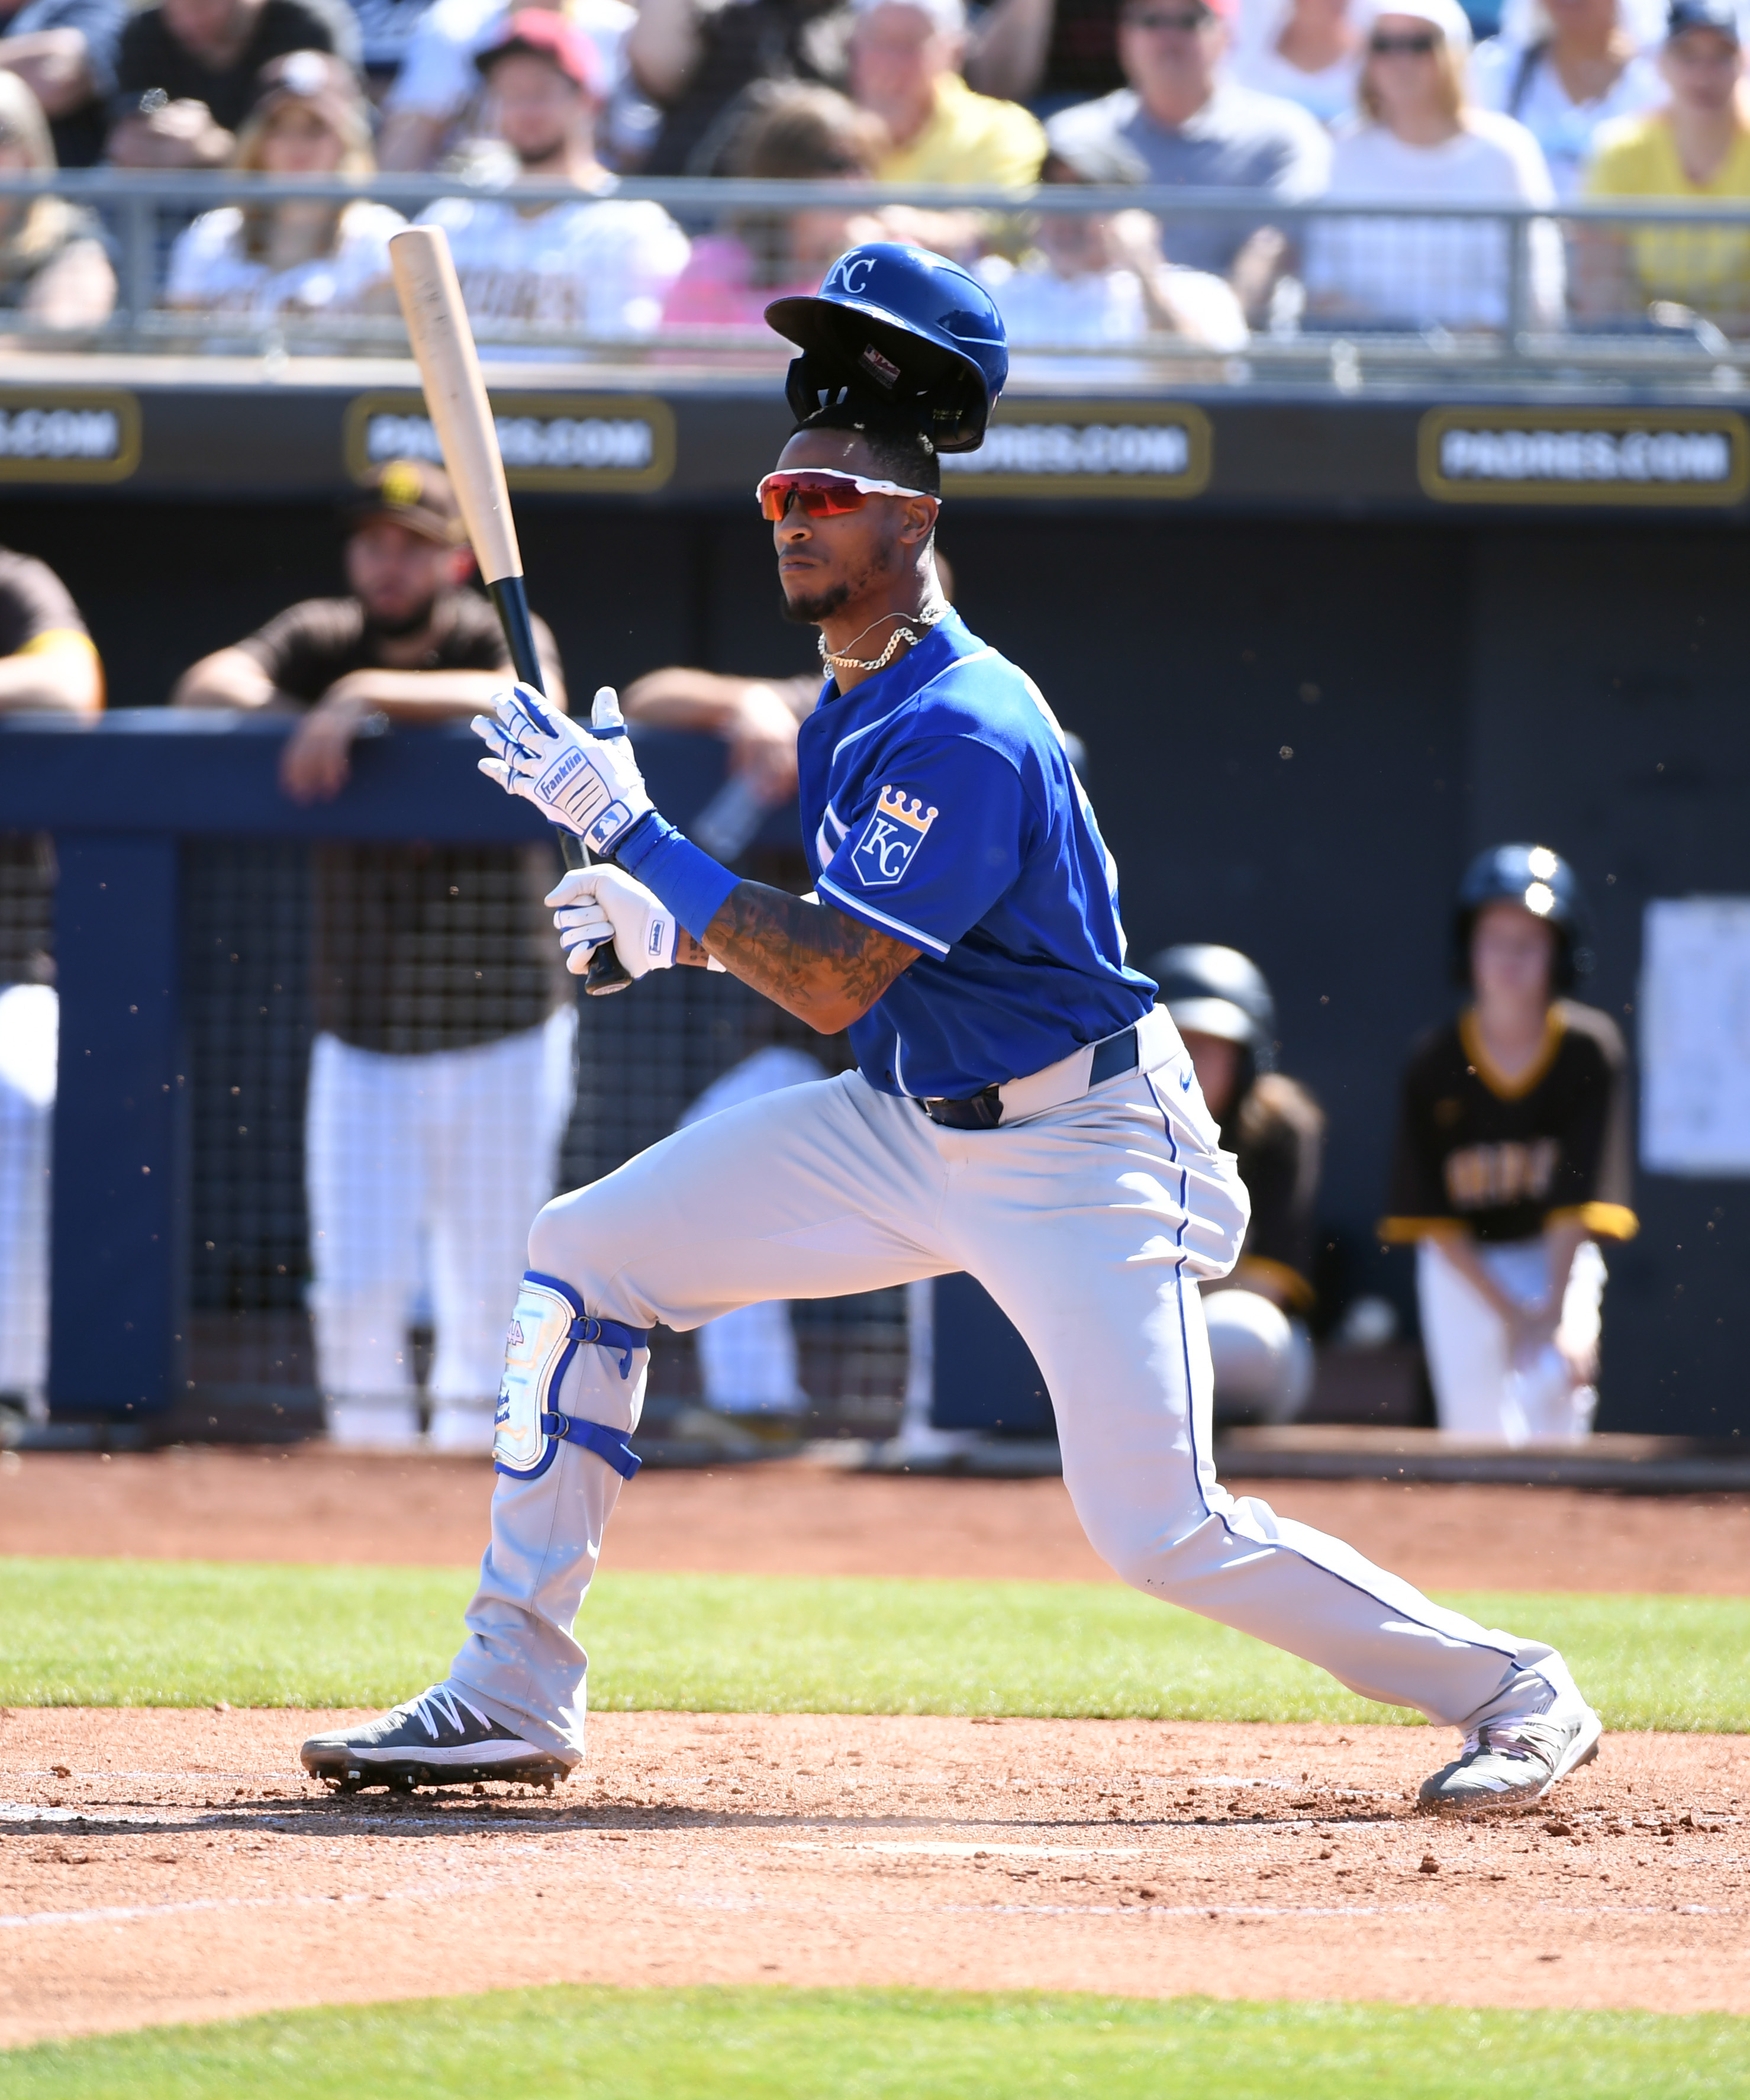 Nick Heath #73 of the Kansas City Royals follows through on a swing during a spring training game against the San Diego Padres on March 04, 2020 in Peoria, Arizona.